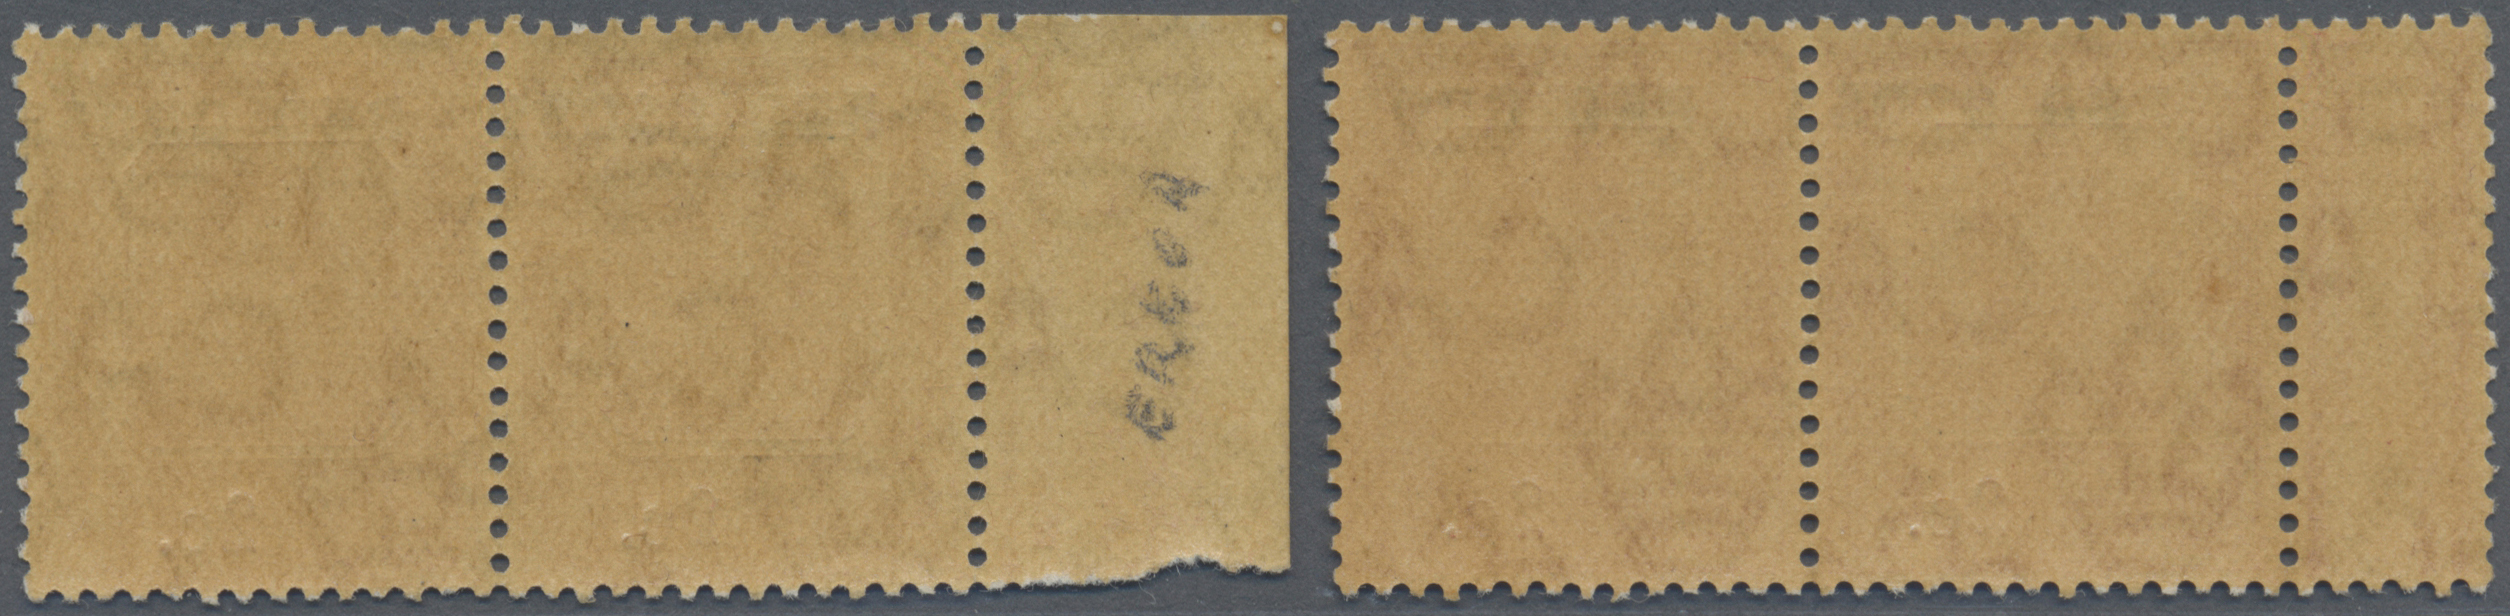 Lot 10096 - Malaiische Staaten - Trengganu  -  Auktionshaus Christoph Gärtner GmbH & Co. KG Philately: ASIA single lots including Special Catalog Malaya Auction #39 Day 3